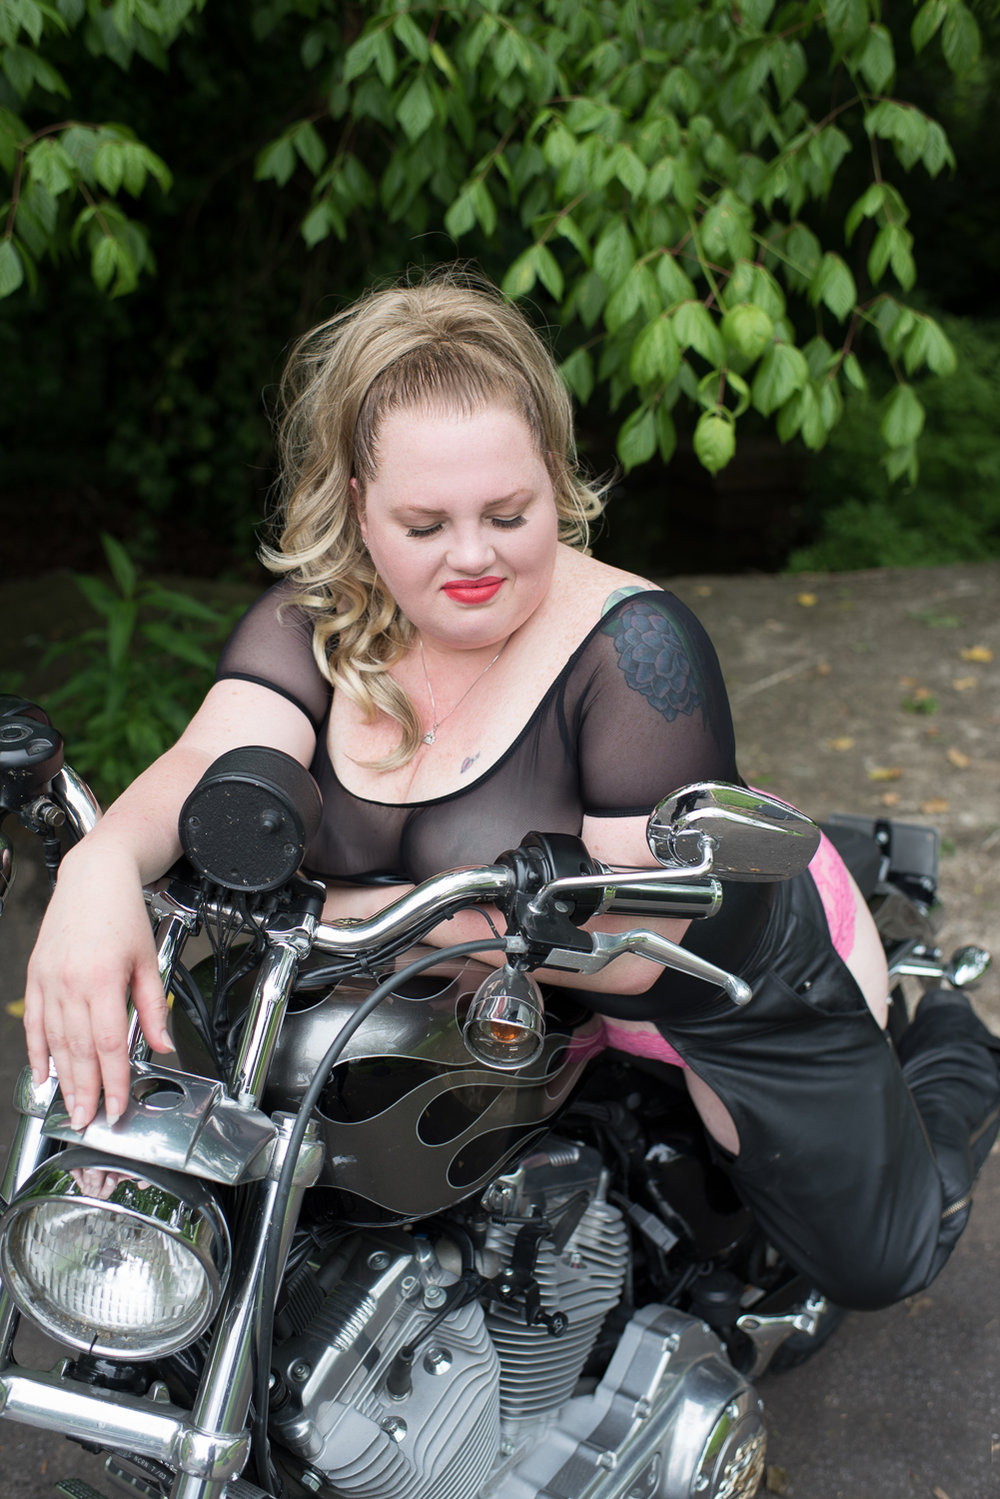 Outdoor Motorcycle Boudoir - D. Phillips Photography - Fort Campbell Clarksville Photographer - www.dphillipsphotography.com